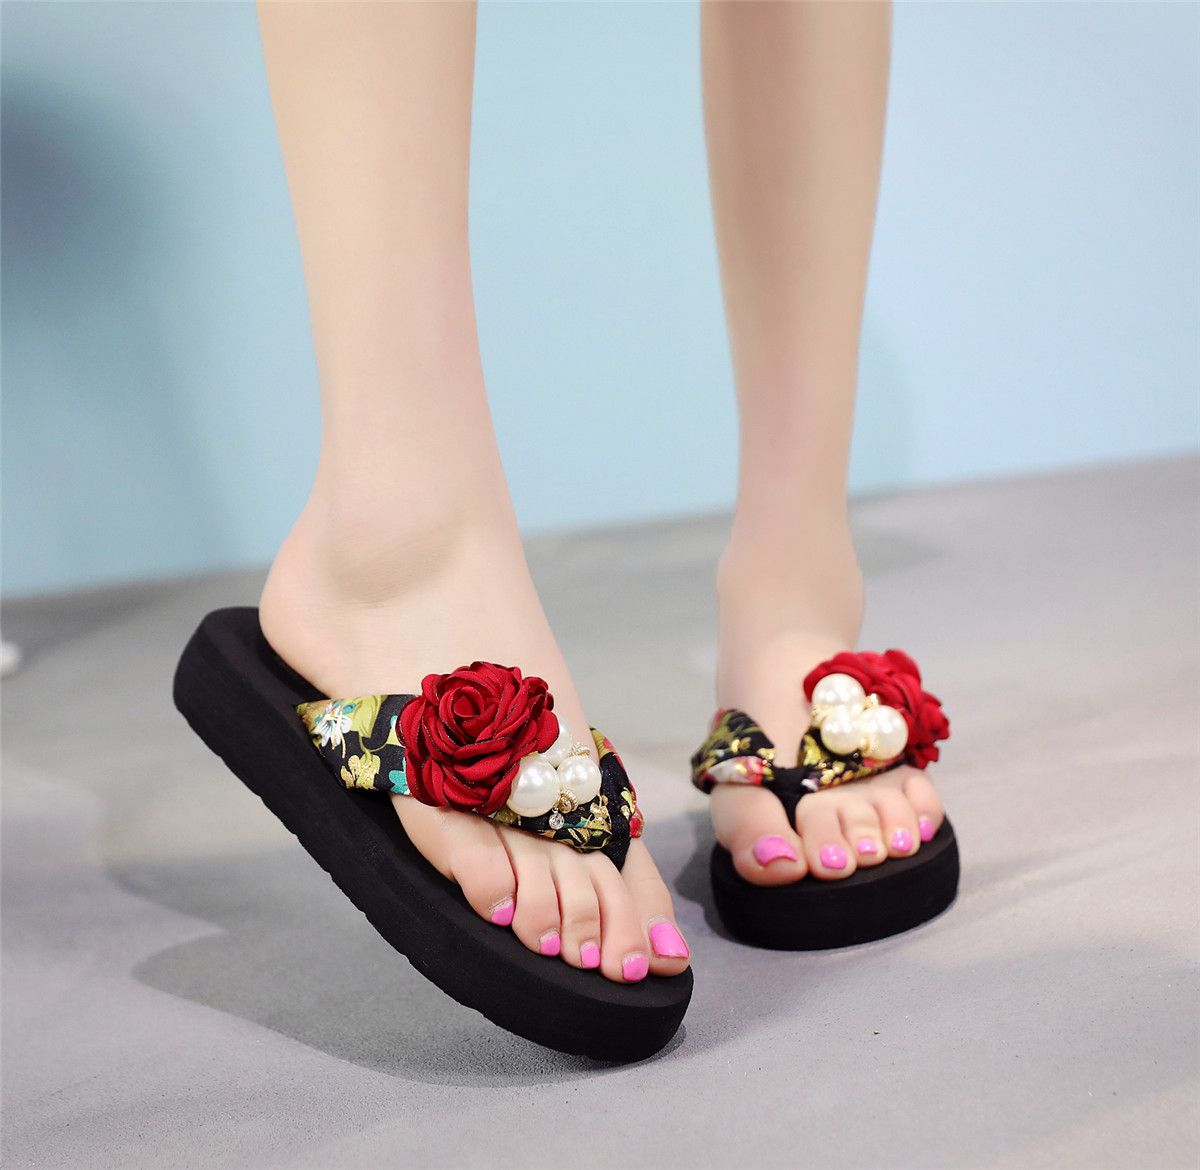 WENYUJH Bohemia Floral Beach Sandal Wedge Platform Thongs Slippers Flip Flops Suummer Shose With Pearl RoseFor Women Girls 2019WENYUJH Bohemia Floral Beach Sandal Wedge Platform Thongs Slippers Flip Flops Suummer Shose With Pearl RoseFor Women Girls 2019